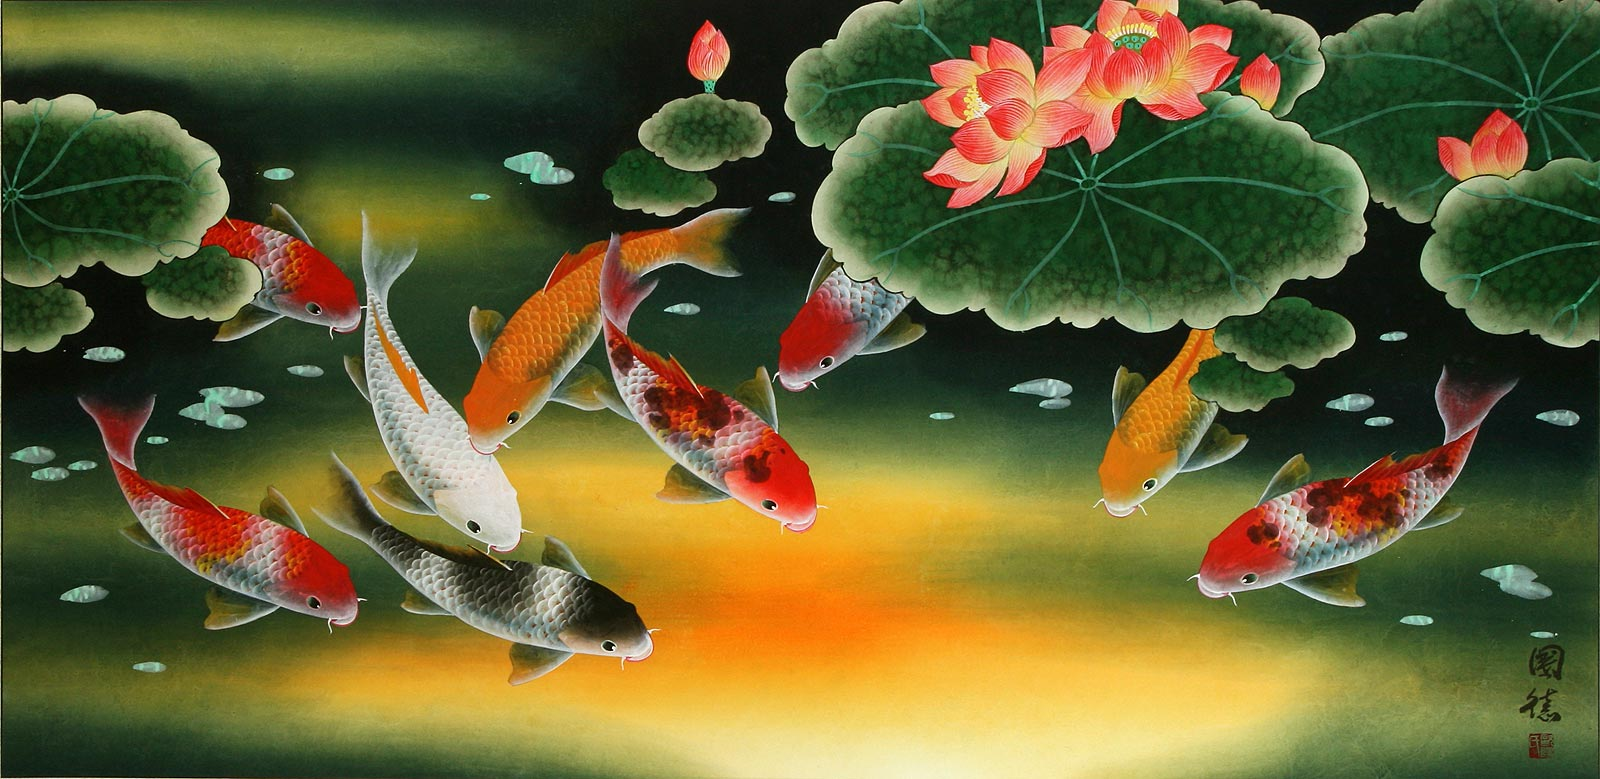 Huge Koi Fish and Lily Chinese Art Painting